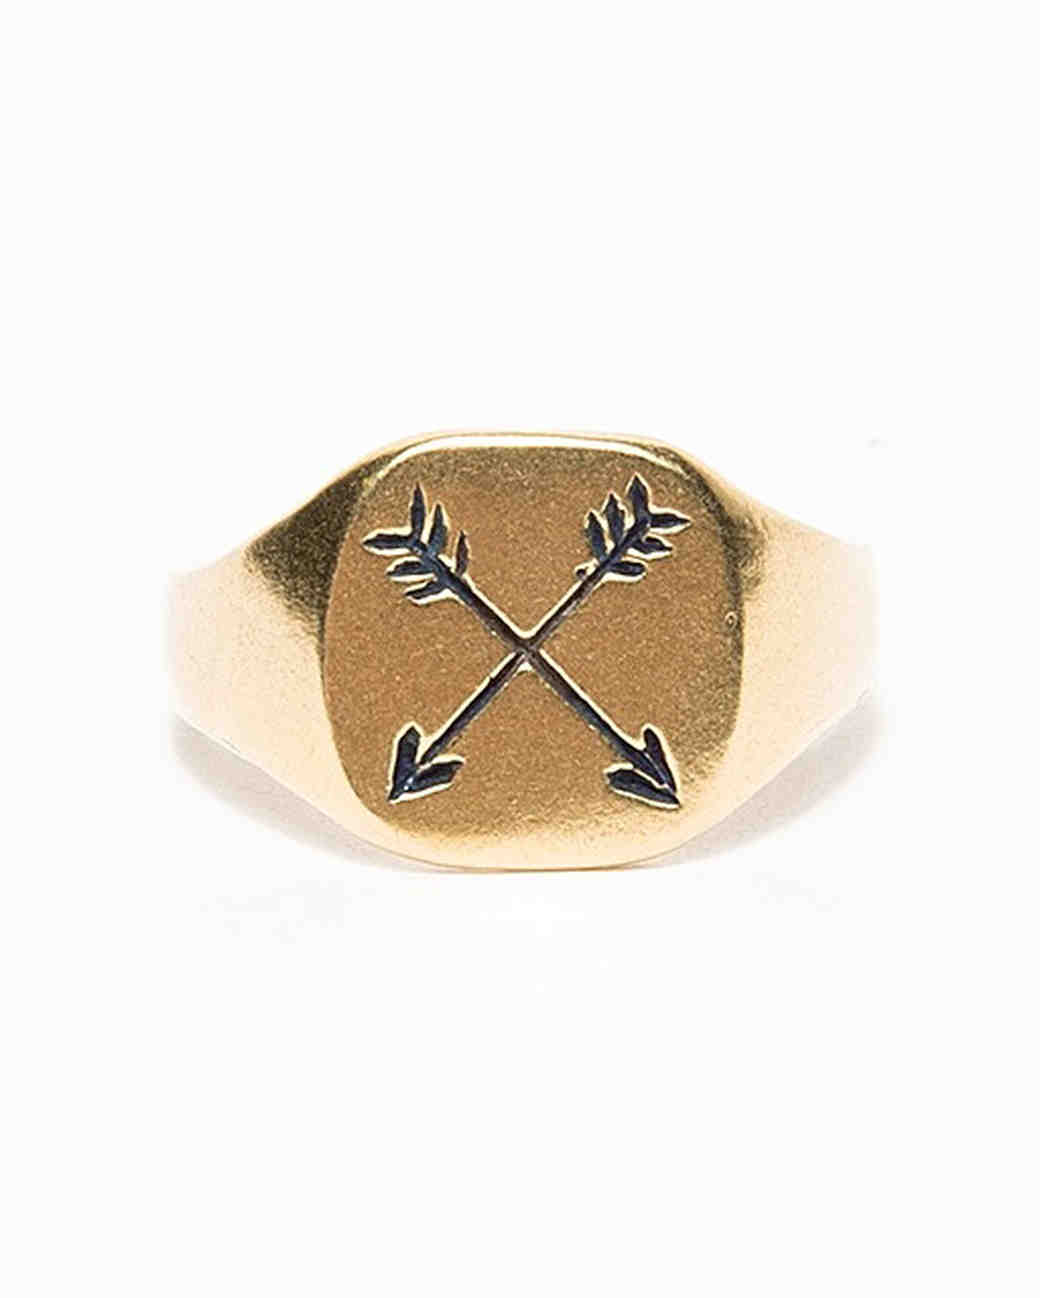 valentines-day-gifts-for-guys-needsupplyco-arrow-ring-0216.jpg